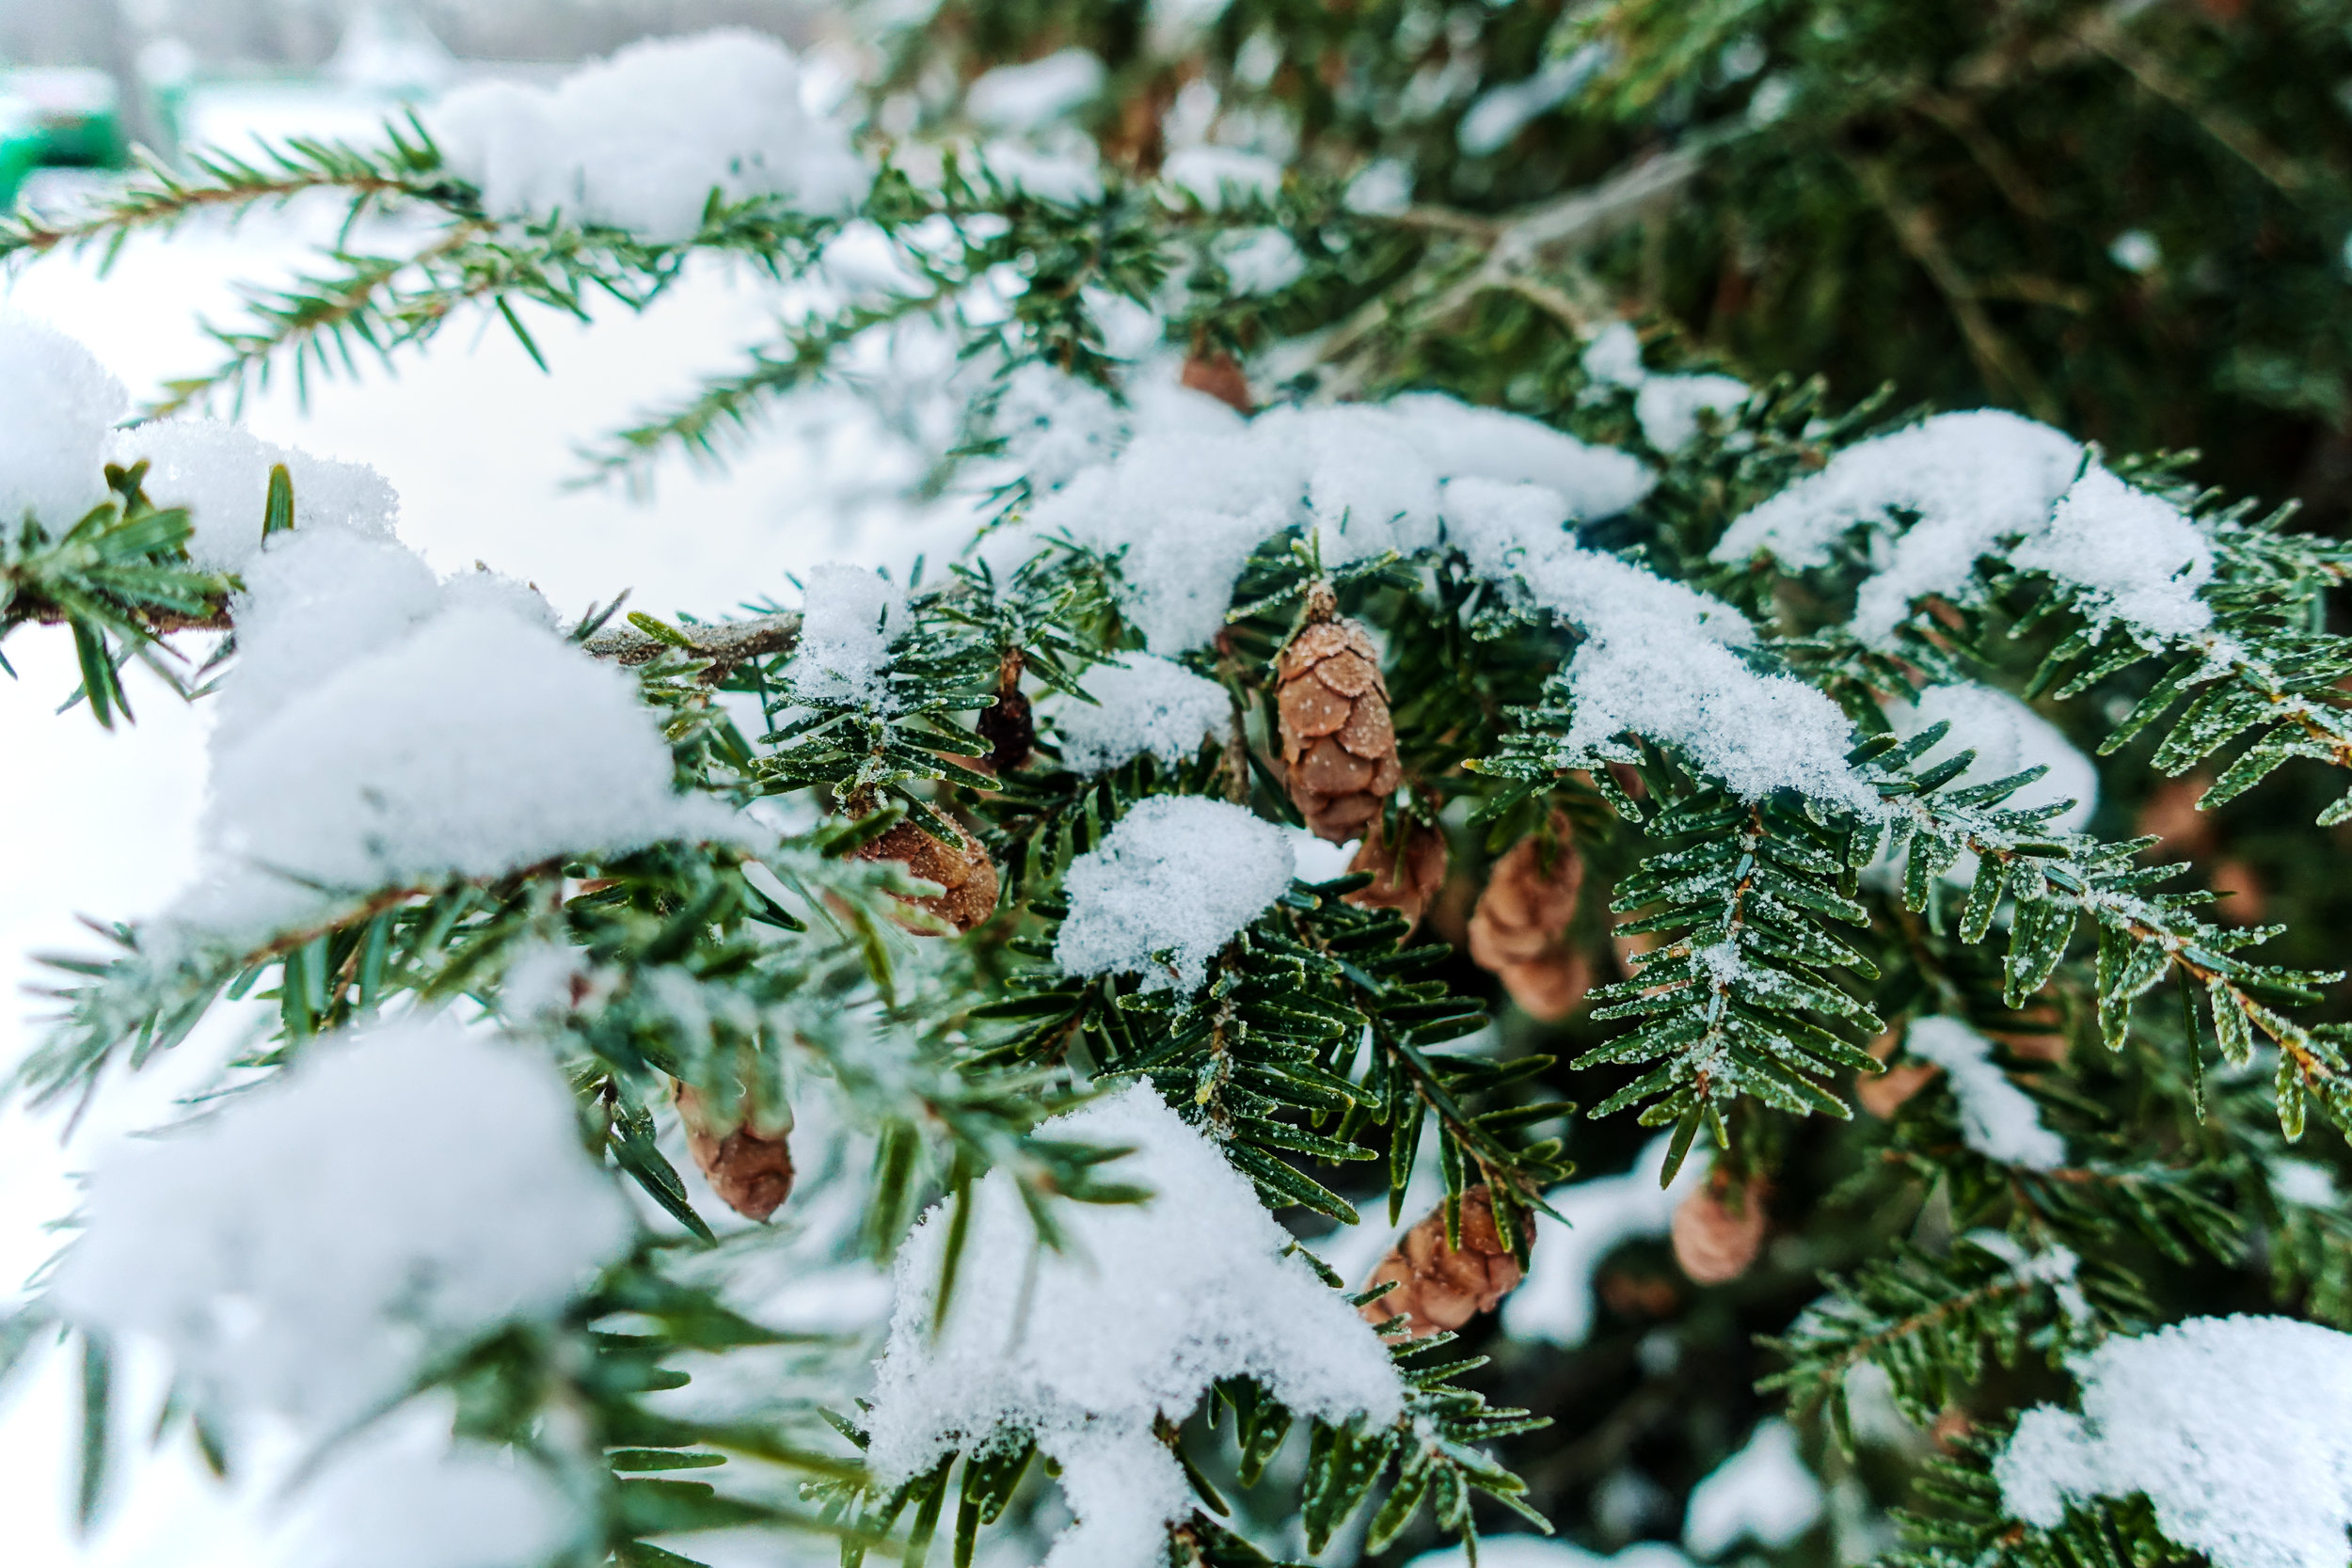 The Forest in Winter - Conifer Resins For Healing + Pleasure